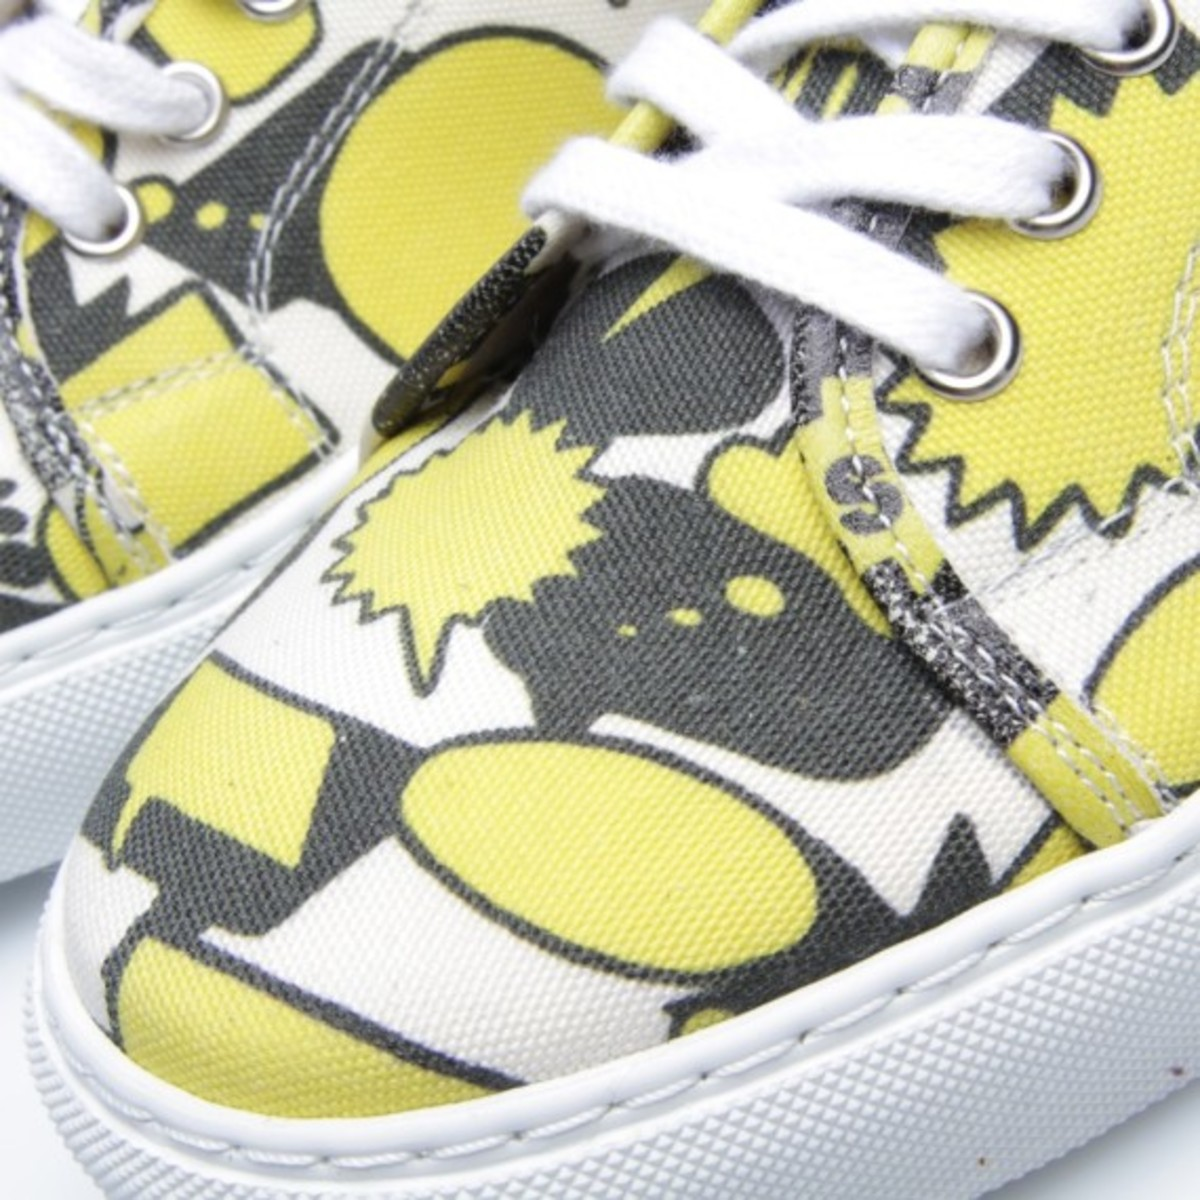 comme-des-garcons-shirt-the-generic-man-print-sneakers-06